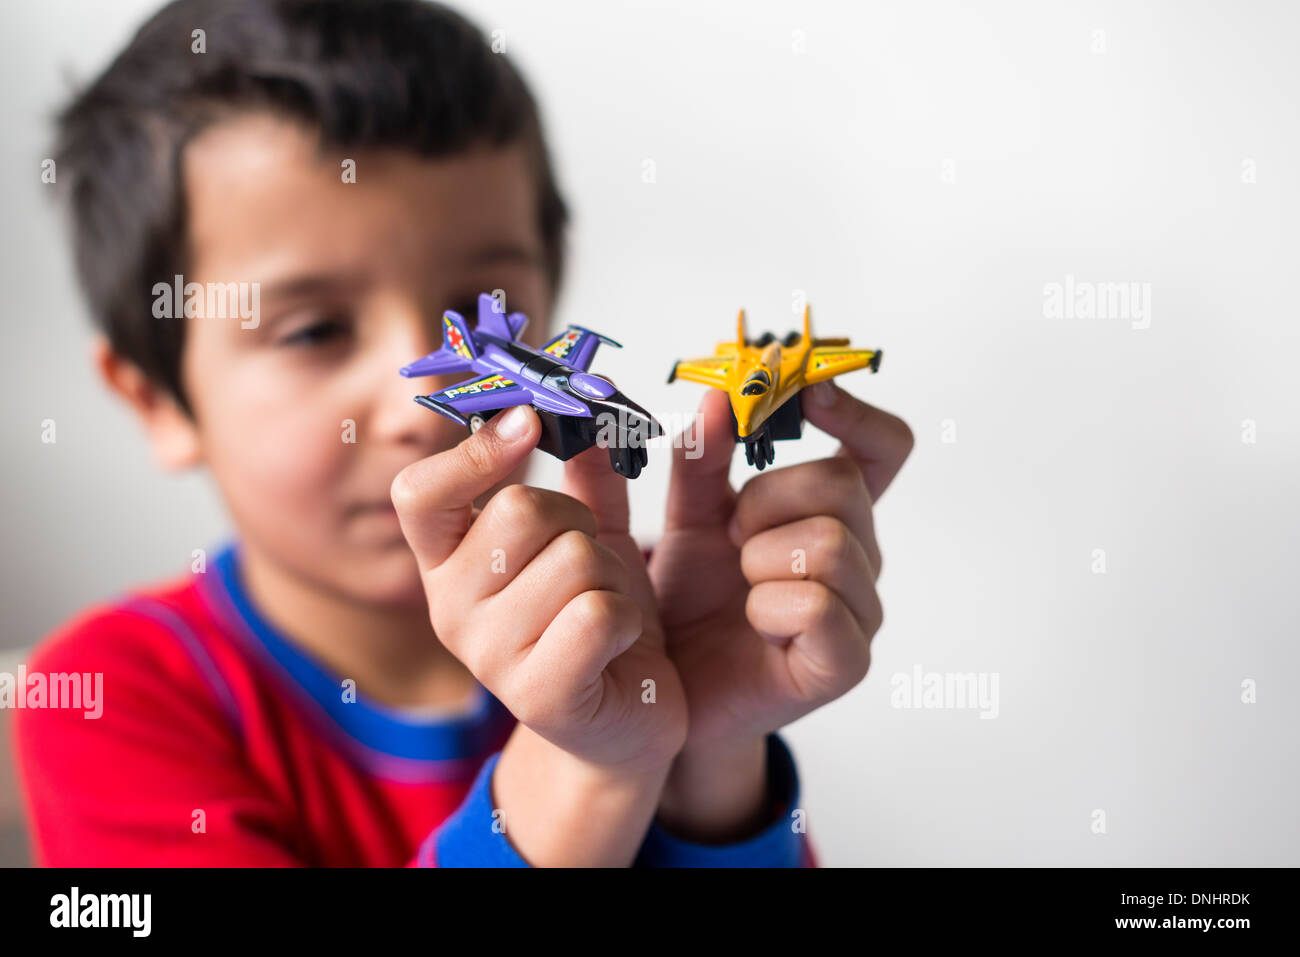 Boy plays with two toy aeroplanes - Stock Image